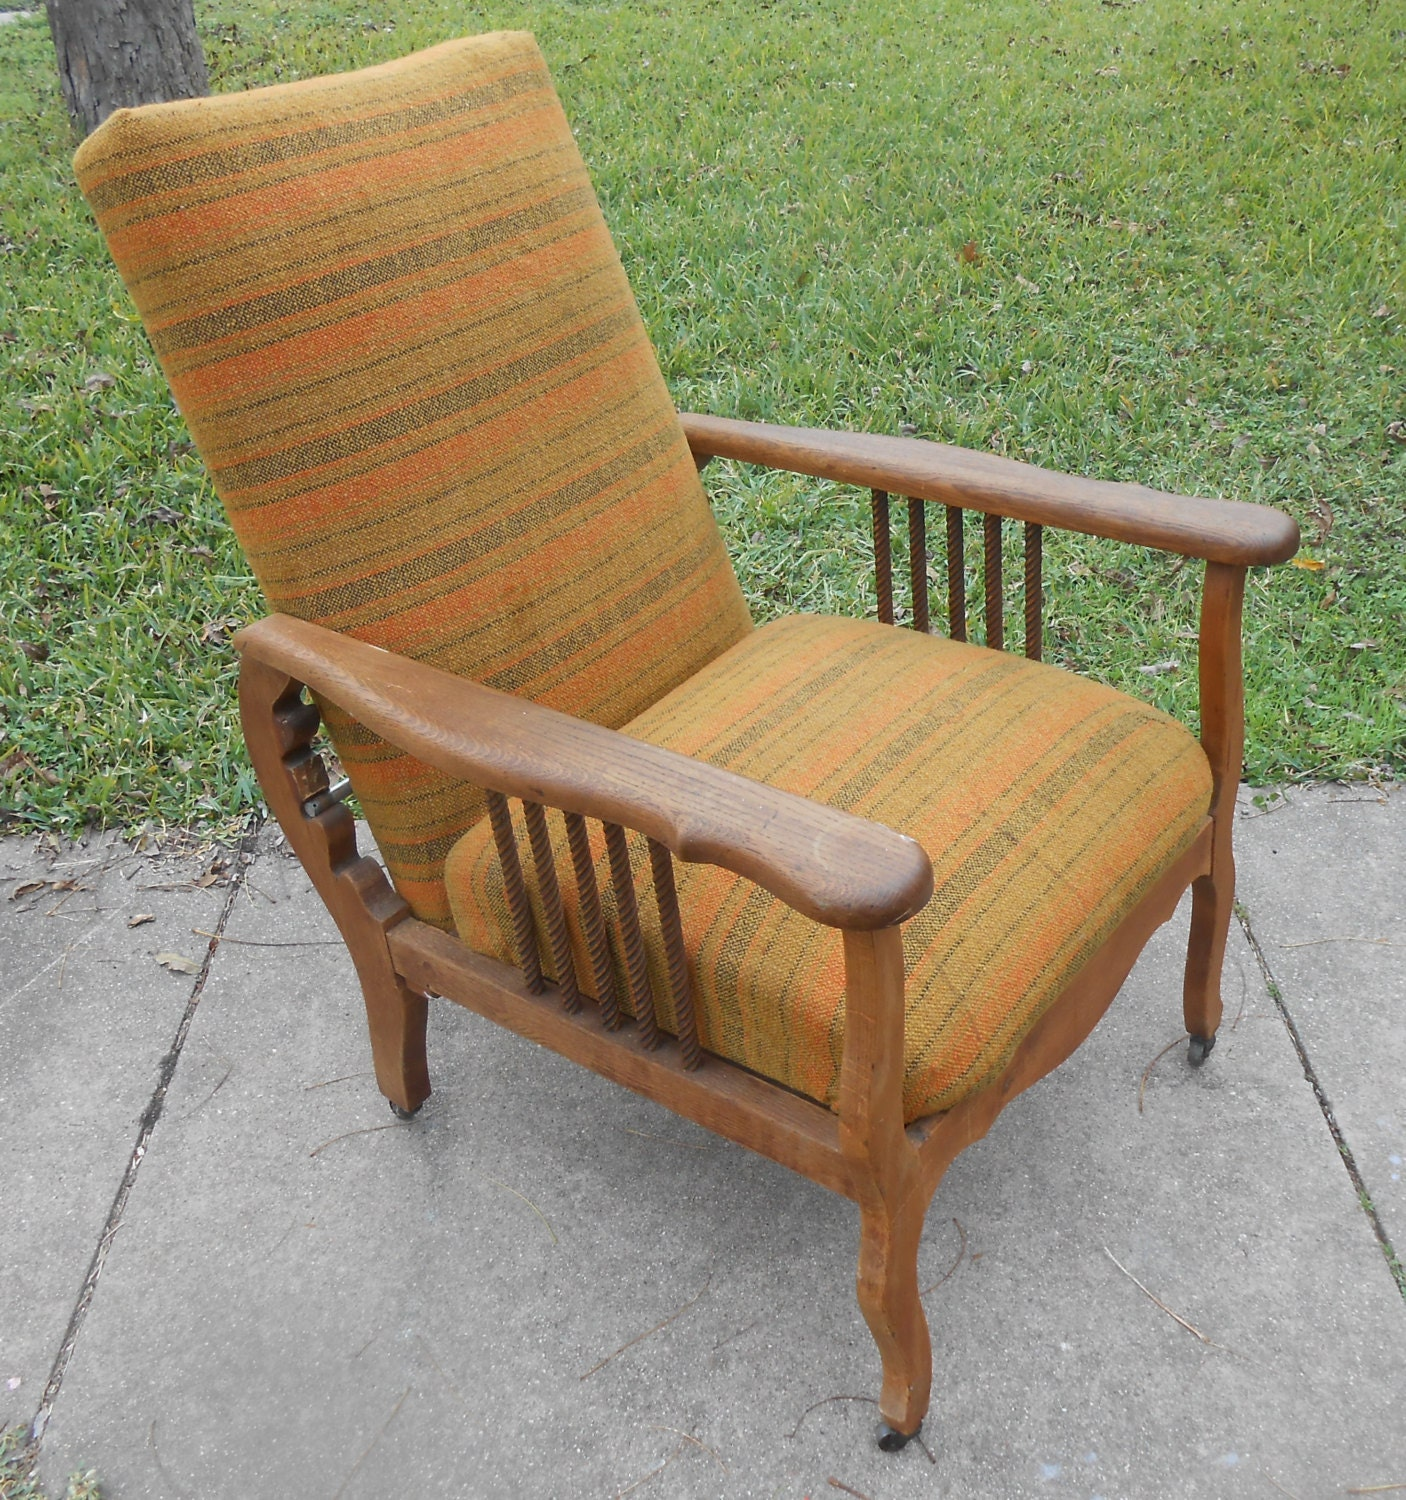 Antique morris chair - Antique Recliner Morris Chair Arts And Crafts Oak Spindle Adjustable Lounge Arm Chair